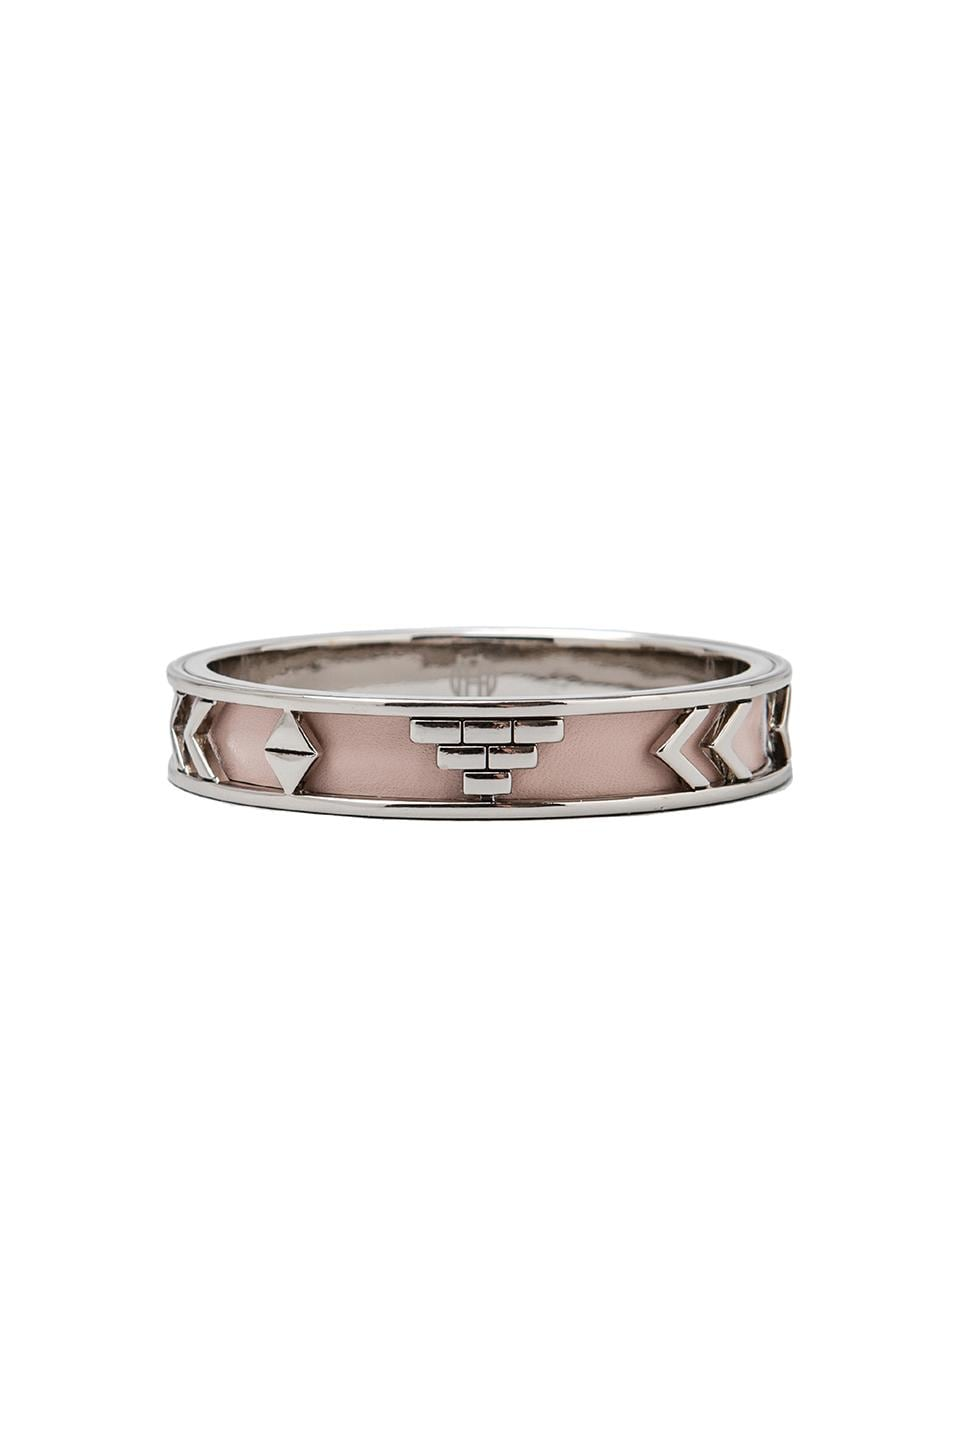 House of Harlow 1960 House of Harlow Aztec Bangles in Palladium with Blush Leather